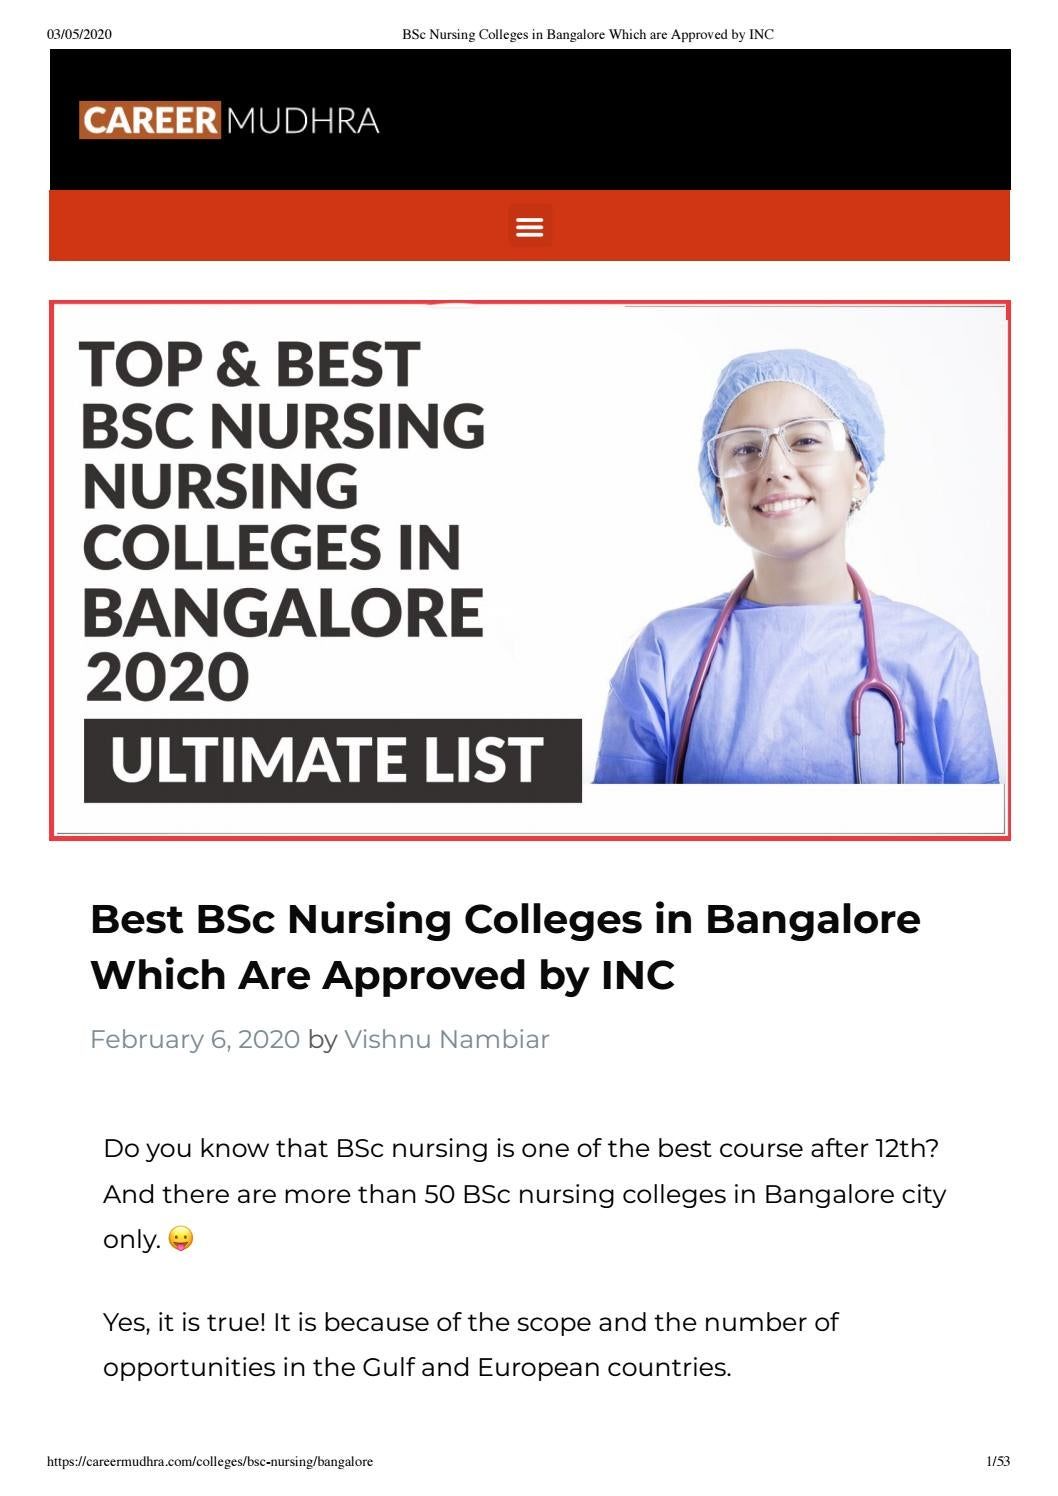 Top 10 Bsc Nursing Colleges In Bangalore 2020 By Amrita Singh Issuu